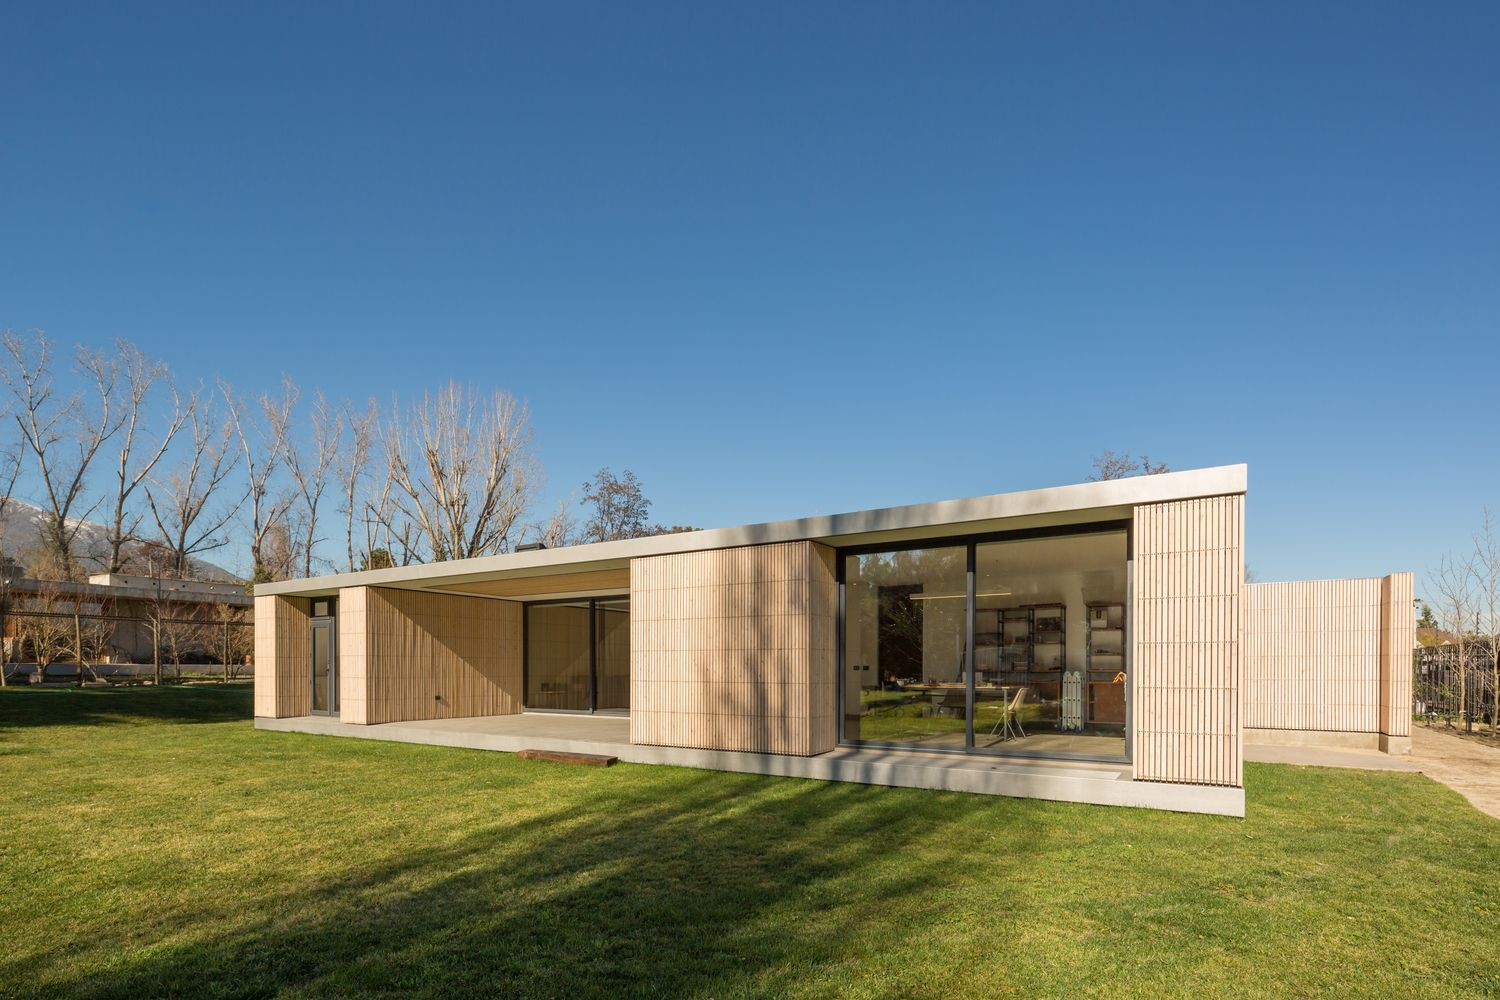 Beautiful Gallery Of House Workshop For An Artist / Planmaestro   12 Idea